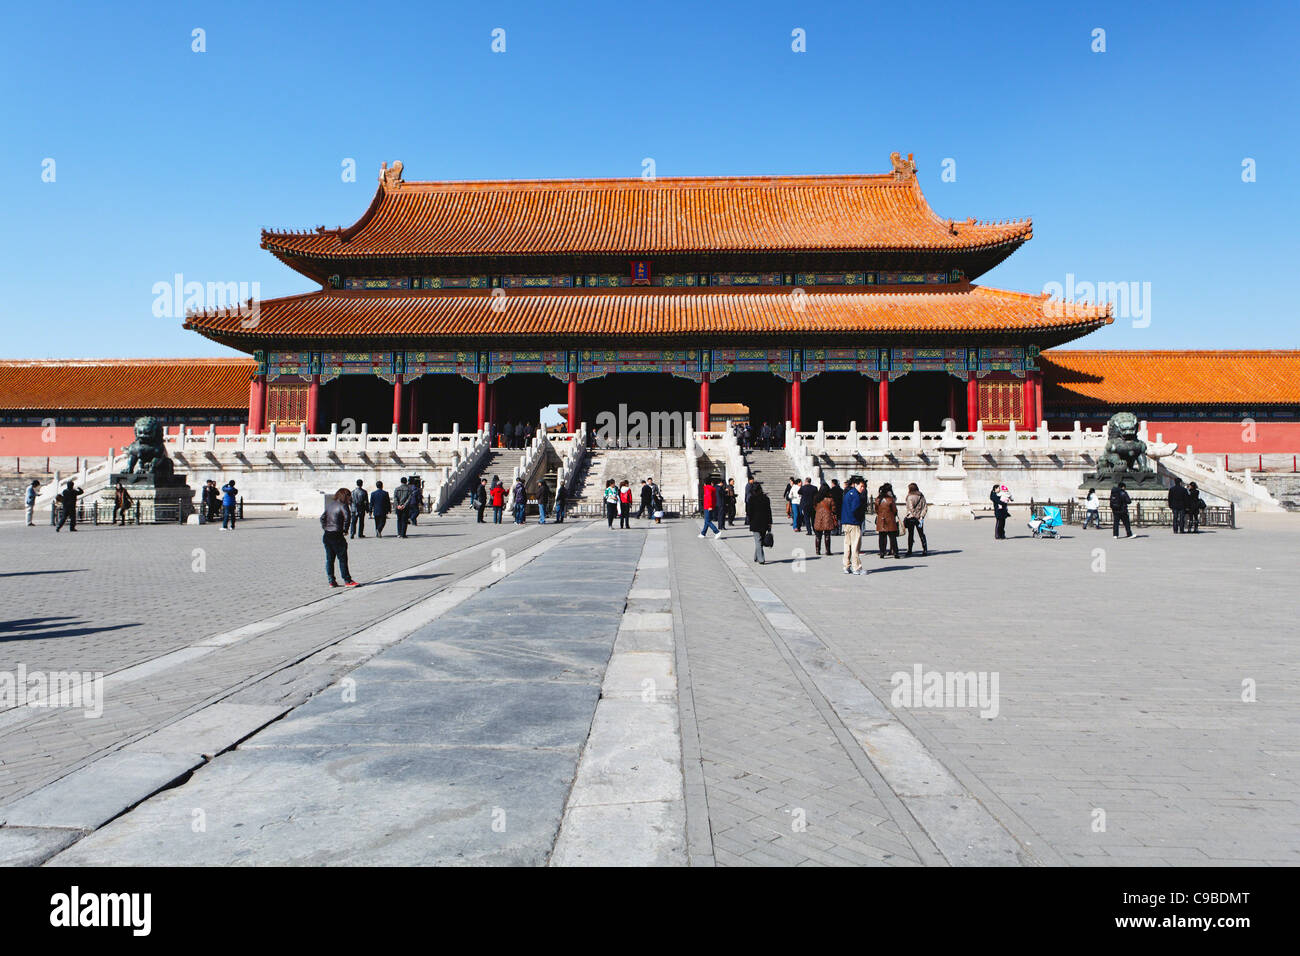 The Hall of Supreme Harmony inside the Forbidden City, Beijing China - Stock Image